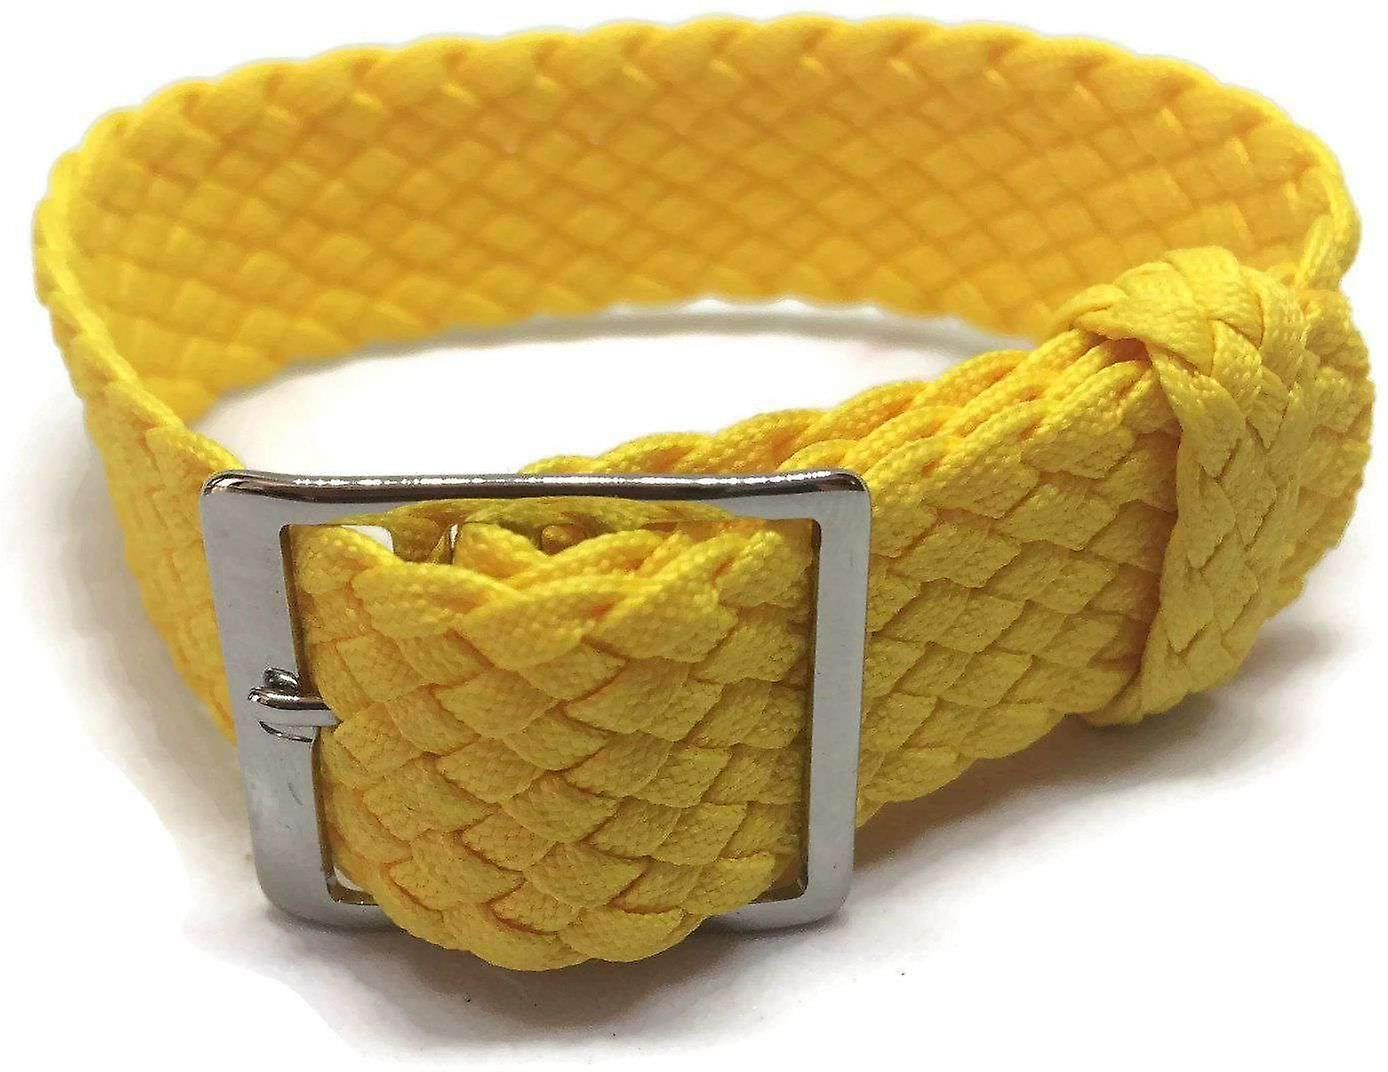 Mesh fabric watch strap yellow 20mm with polished stainless steel buckle